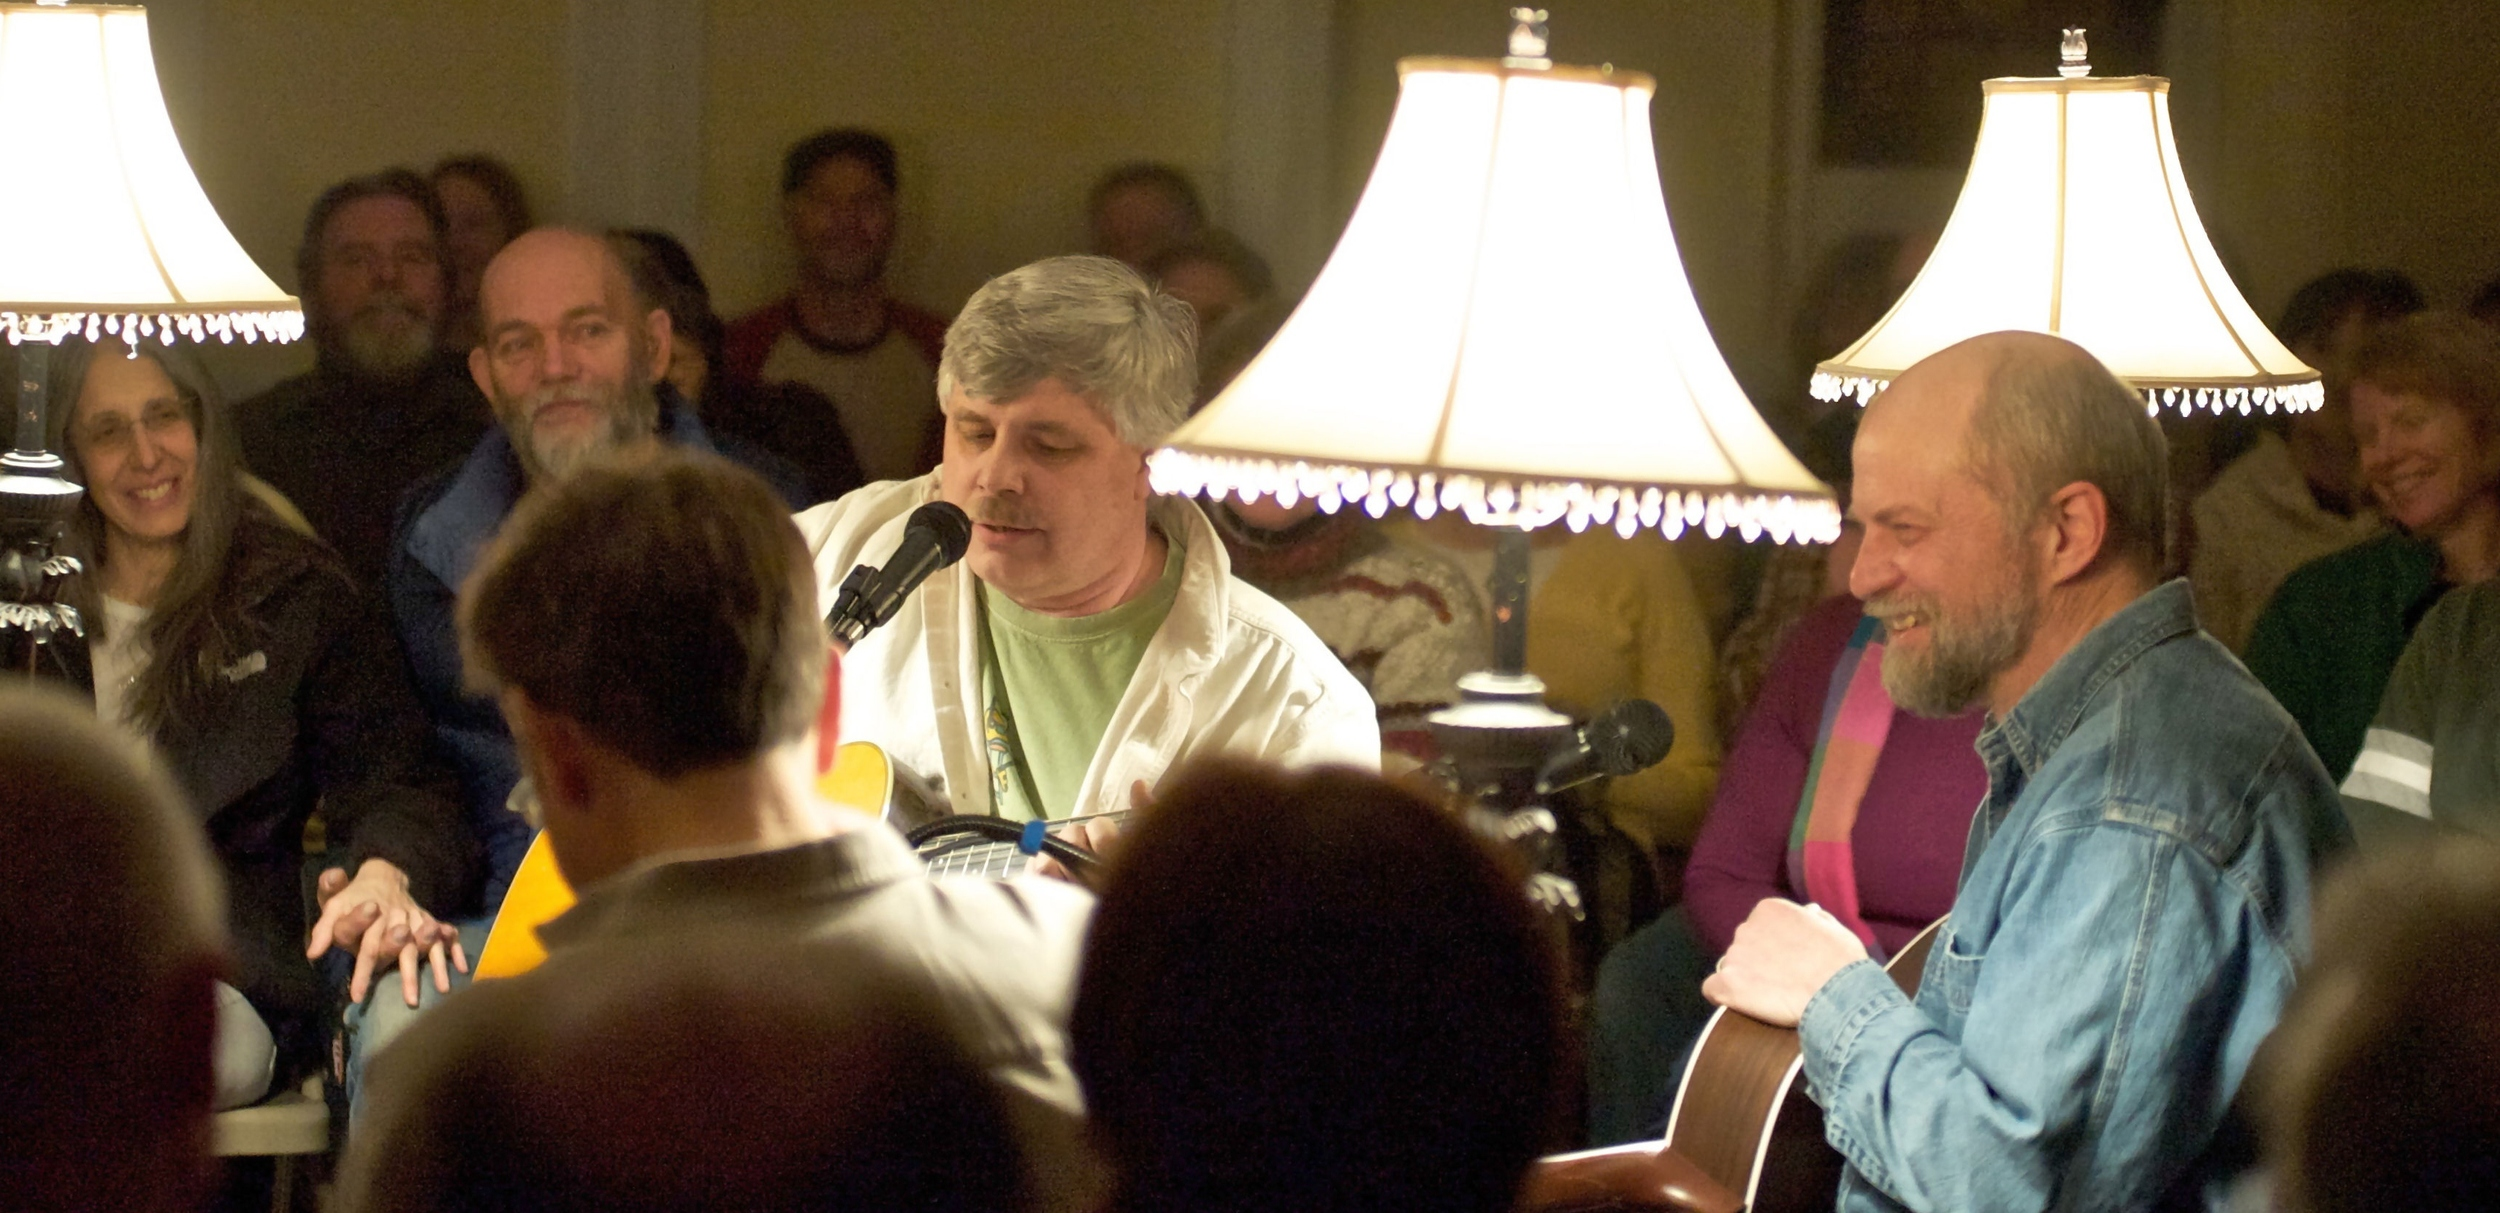 Terry Seeley (singing) & Bruce Hildenbrand (right) 100th show in Jan. 201 [photo:Bob Biamonte]